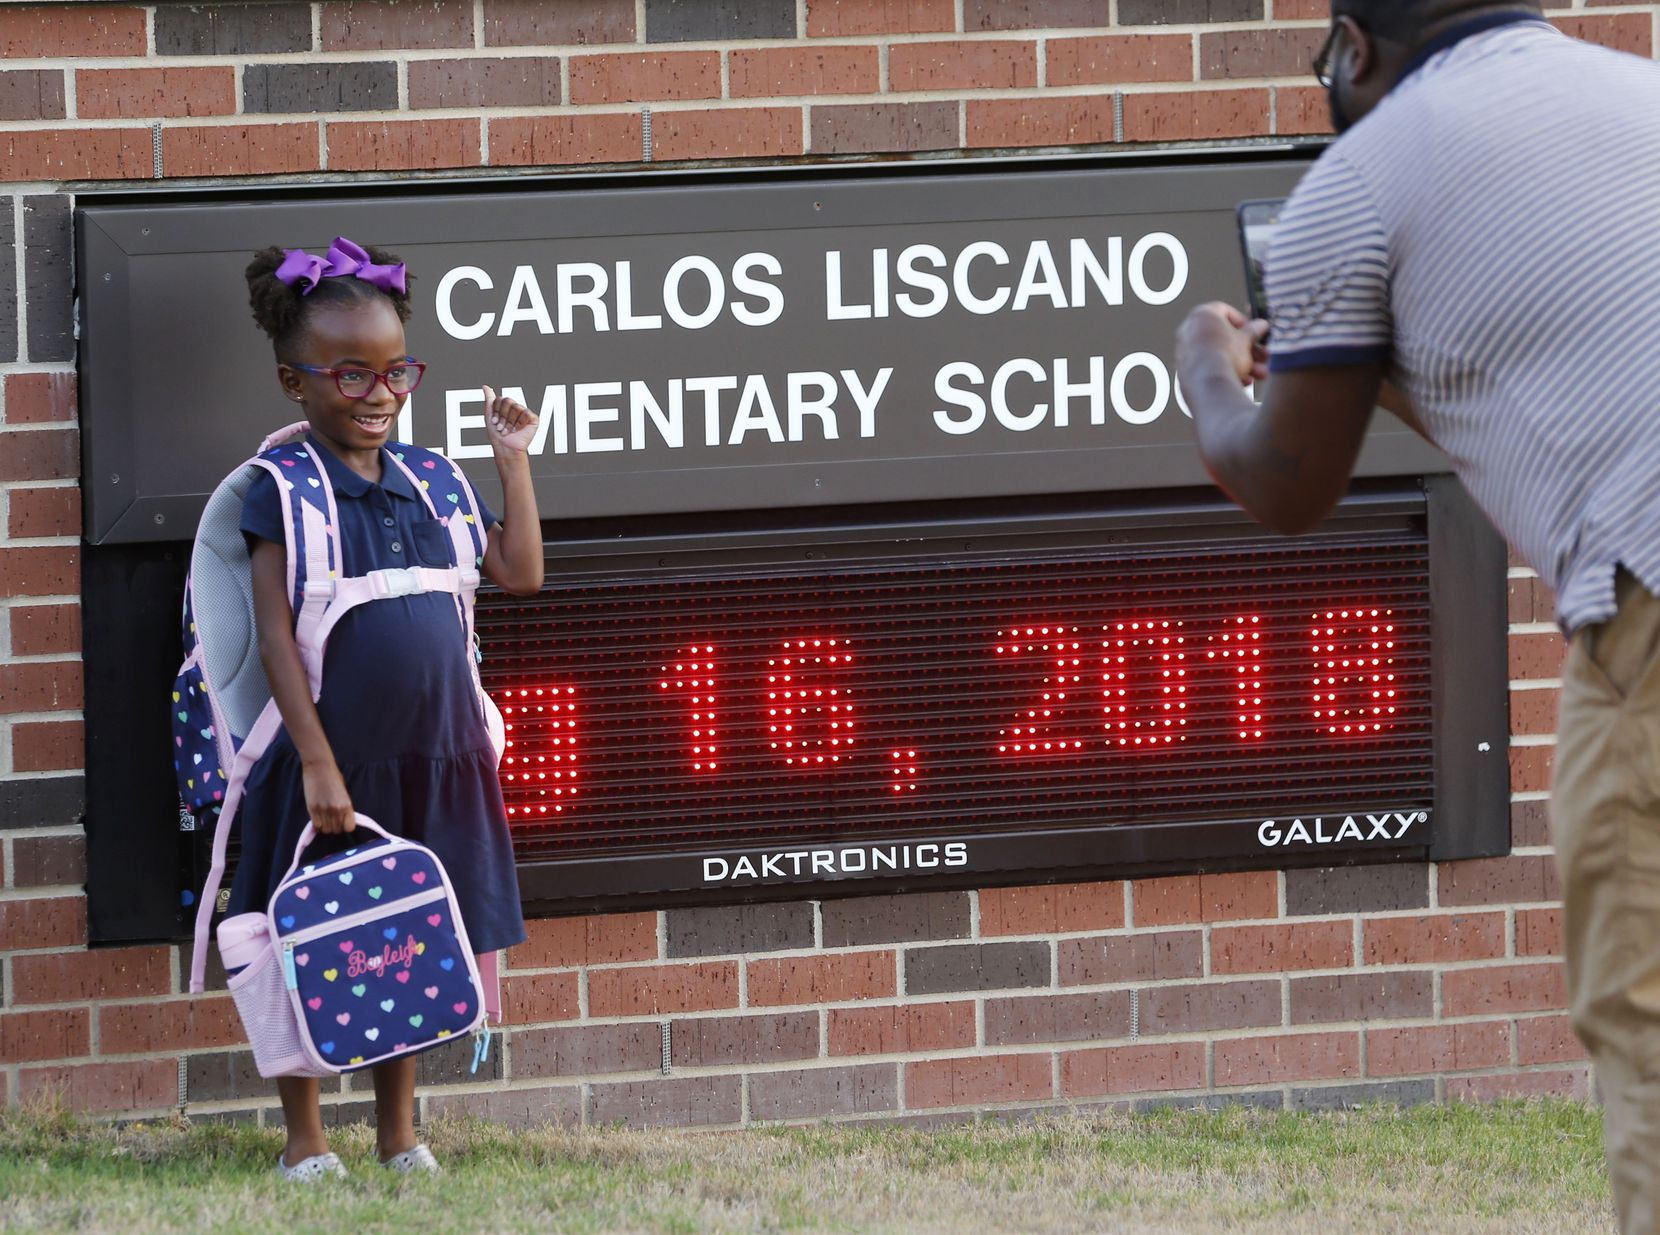 Kindergartner Bayleigh Briggs gets her photo taken by her dad, Chris Briggs, in front of the school sign on the first day of school at Carlos Liscano Elementary School in Frisco on Aug. 16, 2018.